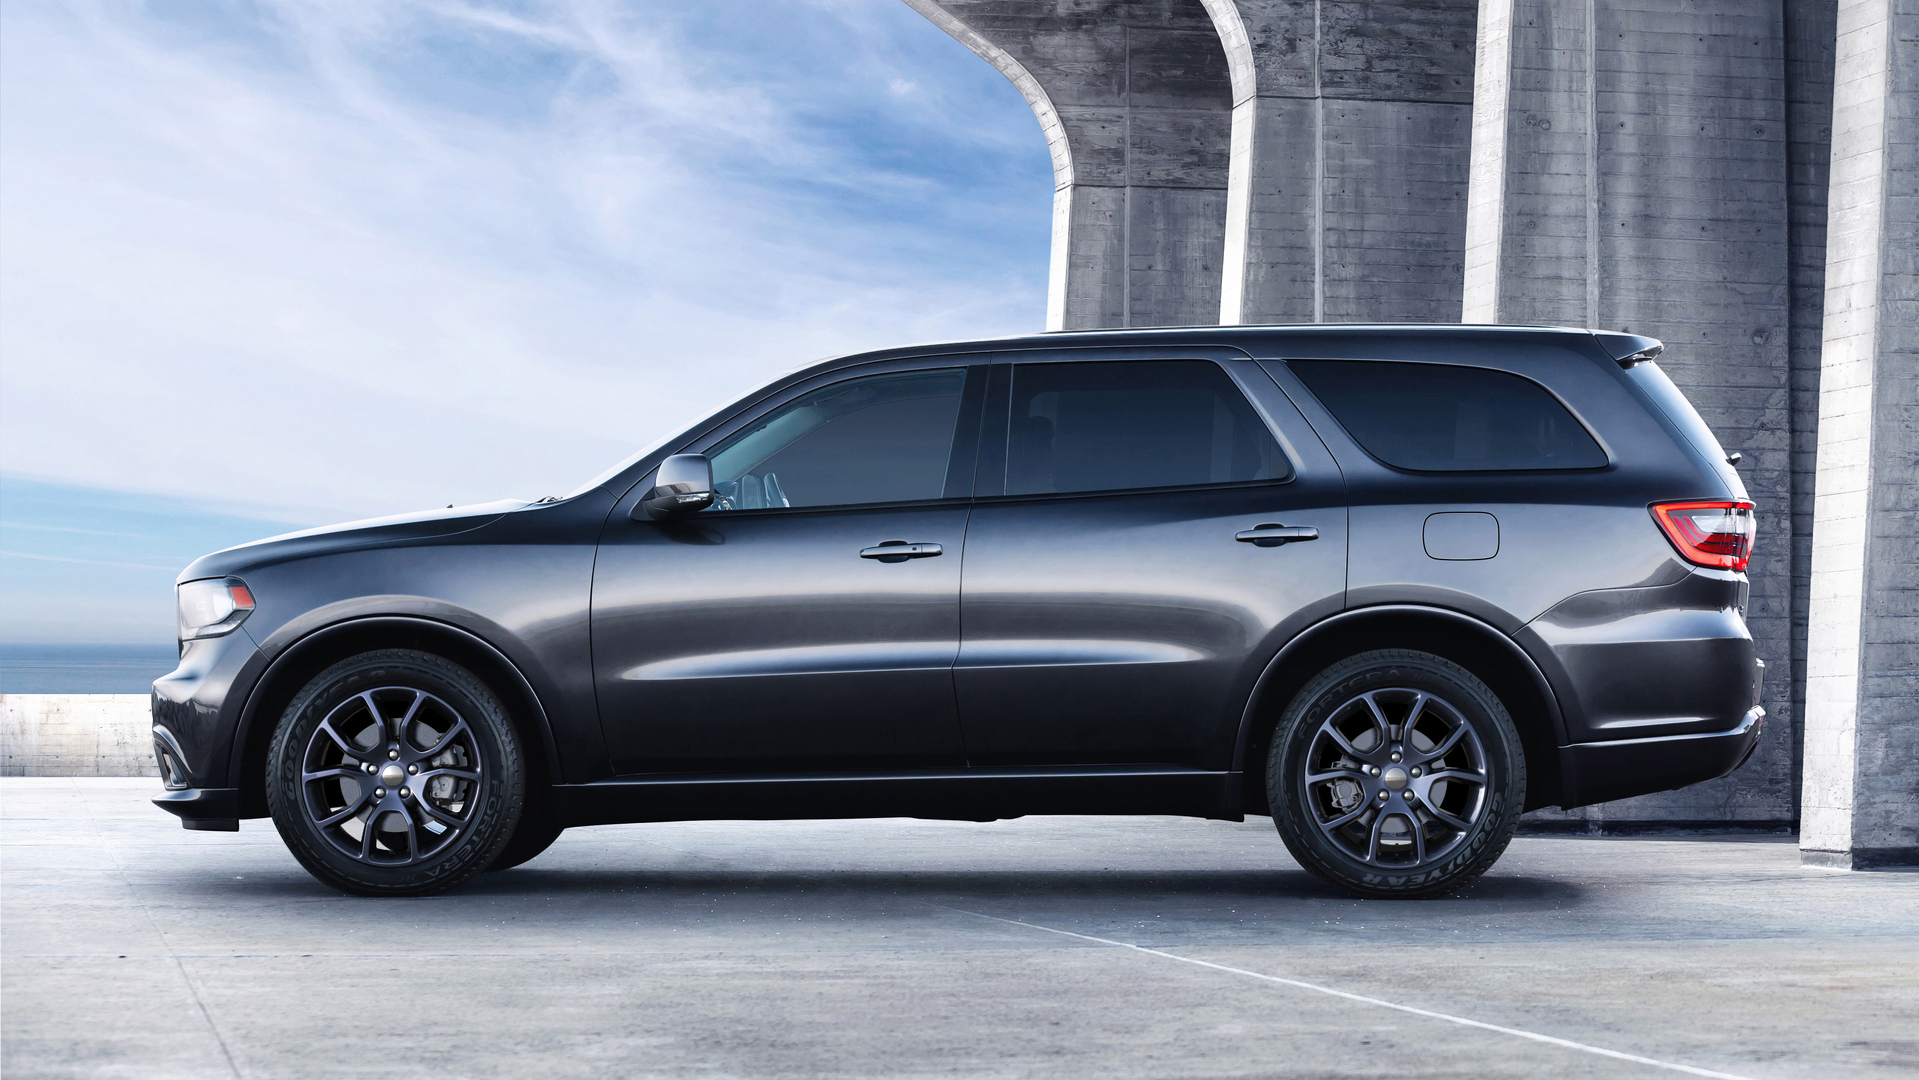 Research 2017                   Dodge Durango pictures, prices and reviews